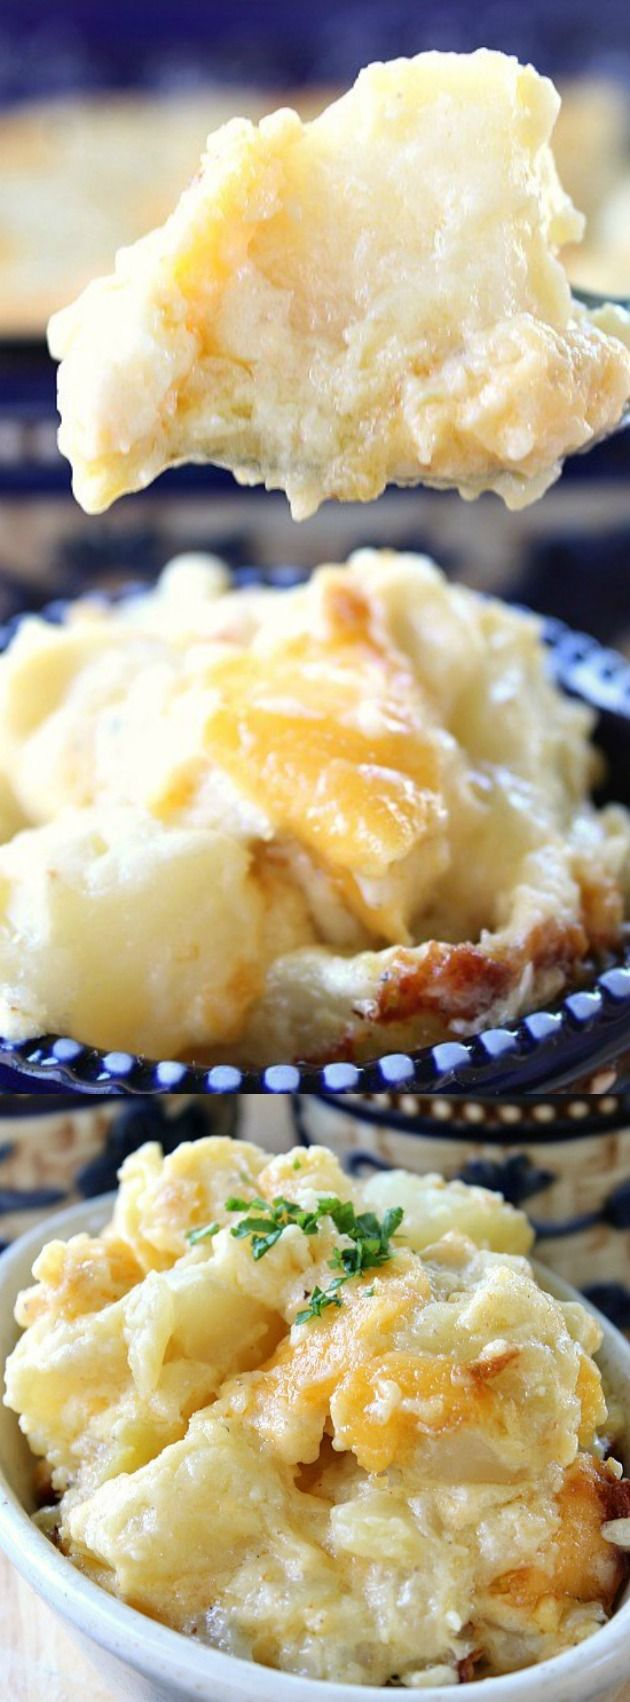 This Cheesy Baked Potato Casserole from Great Grub, Delicious Treats is the perfect side dish for any meal! It's deliciously cheesy with tender bite size potatoes, a hint of garlic and delicious sour cream!